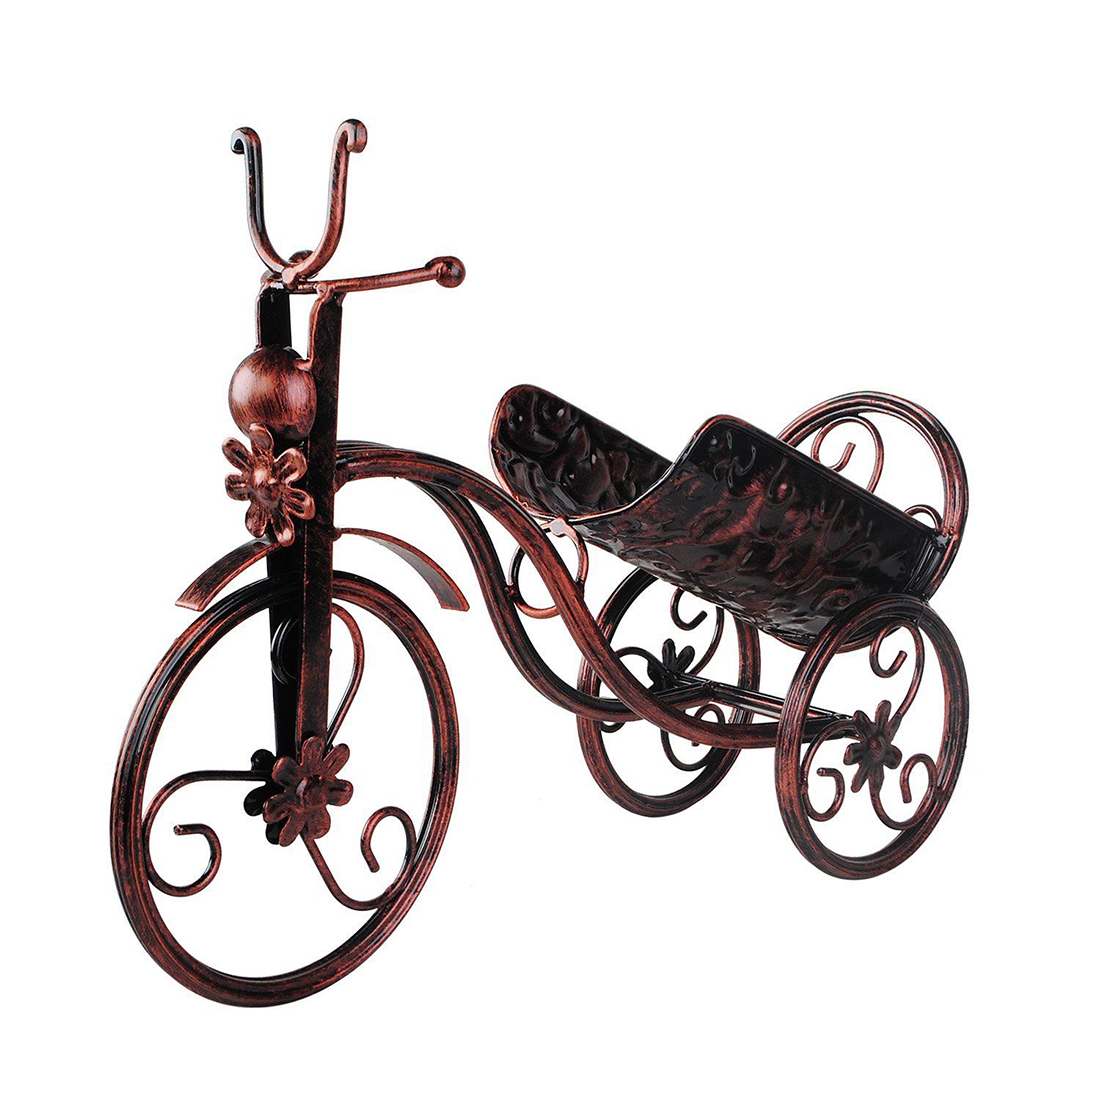 Wine Bottle Holders or Wall Mounted Wine Racks Dispenser Wine Bar Optical Metal bicycles Вино